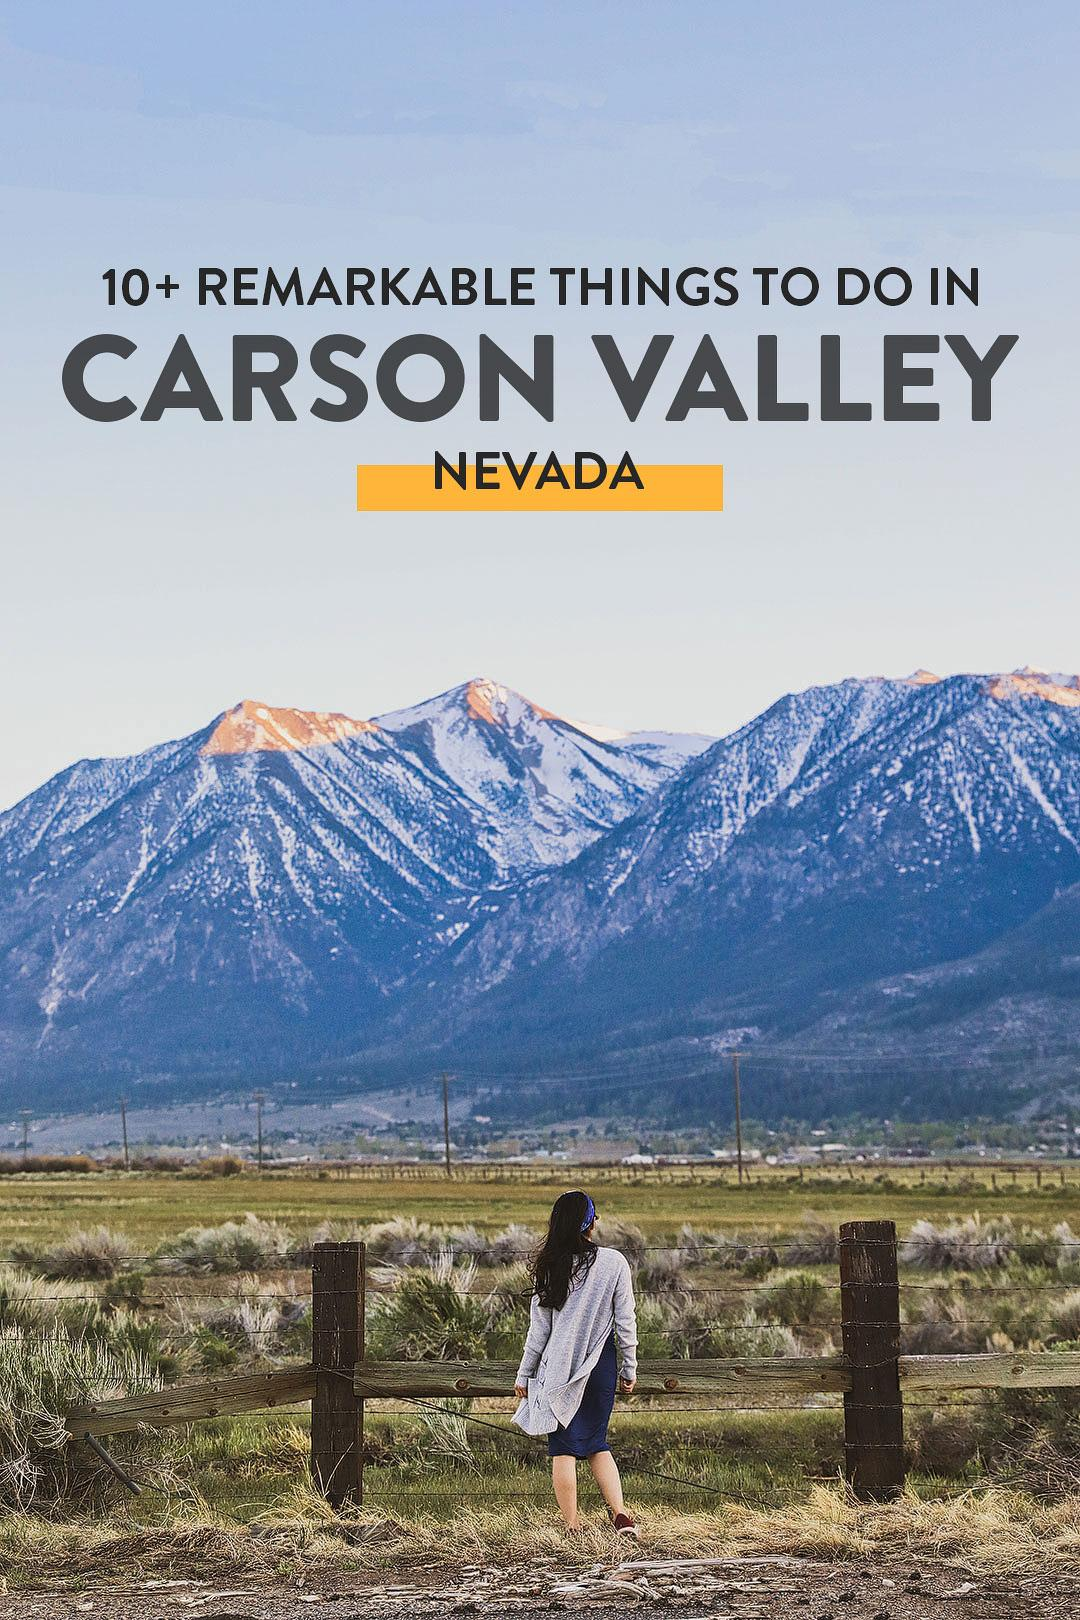 10+ Remarkable Things to Do in Carson Valley NV